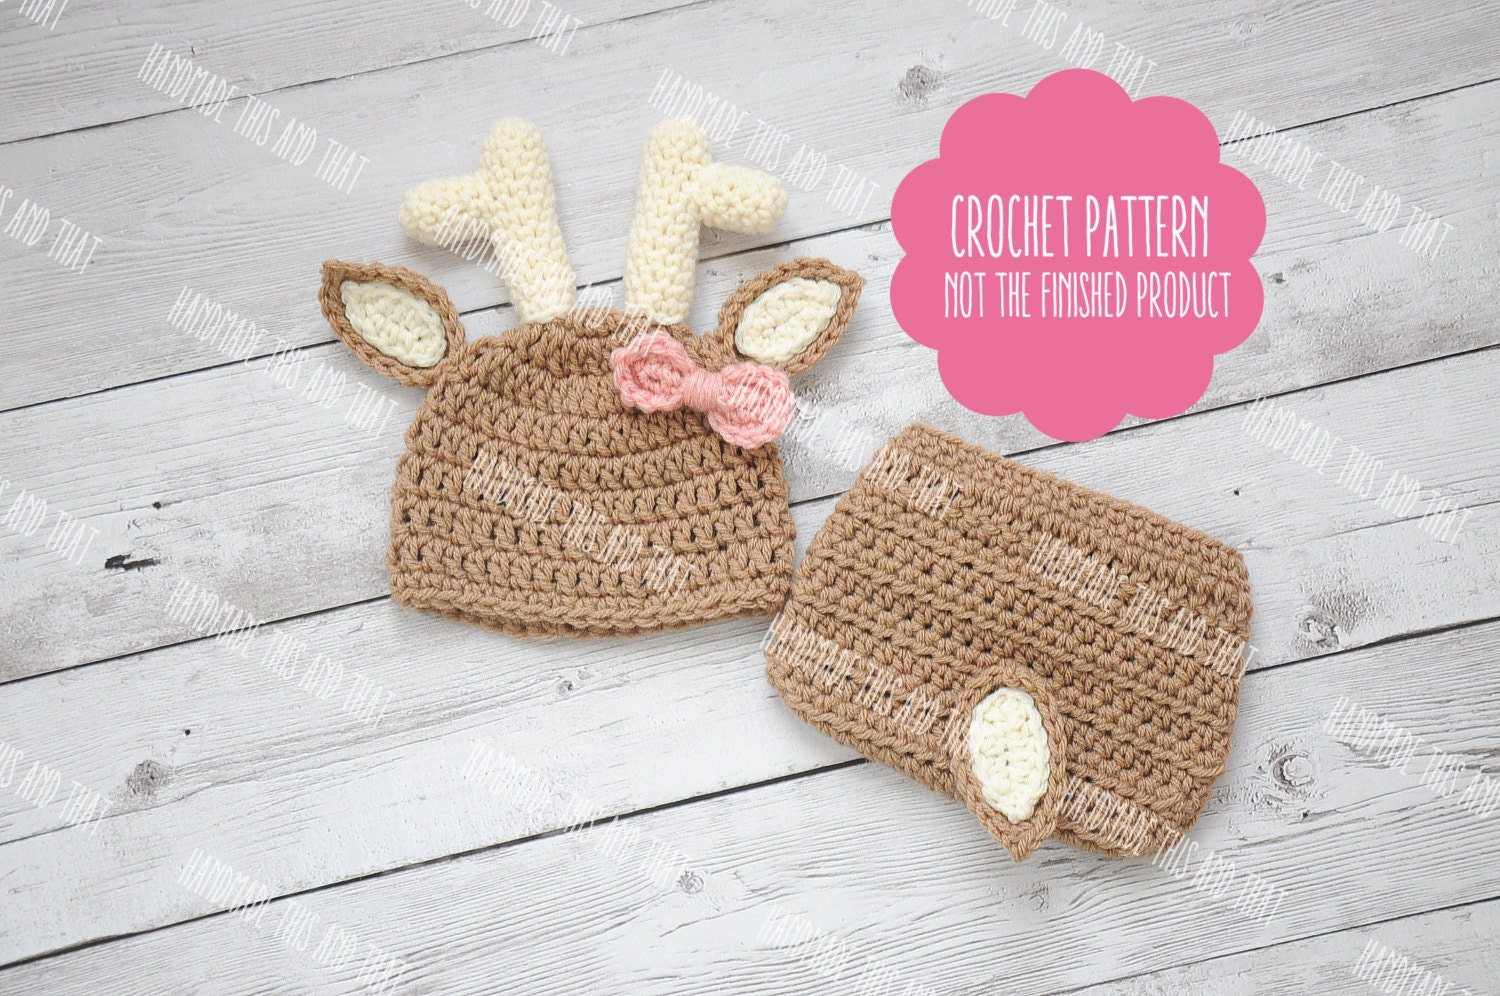 CROCHET PATTERN - Deer hat pattern, Newborn deer outfit pattern ...